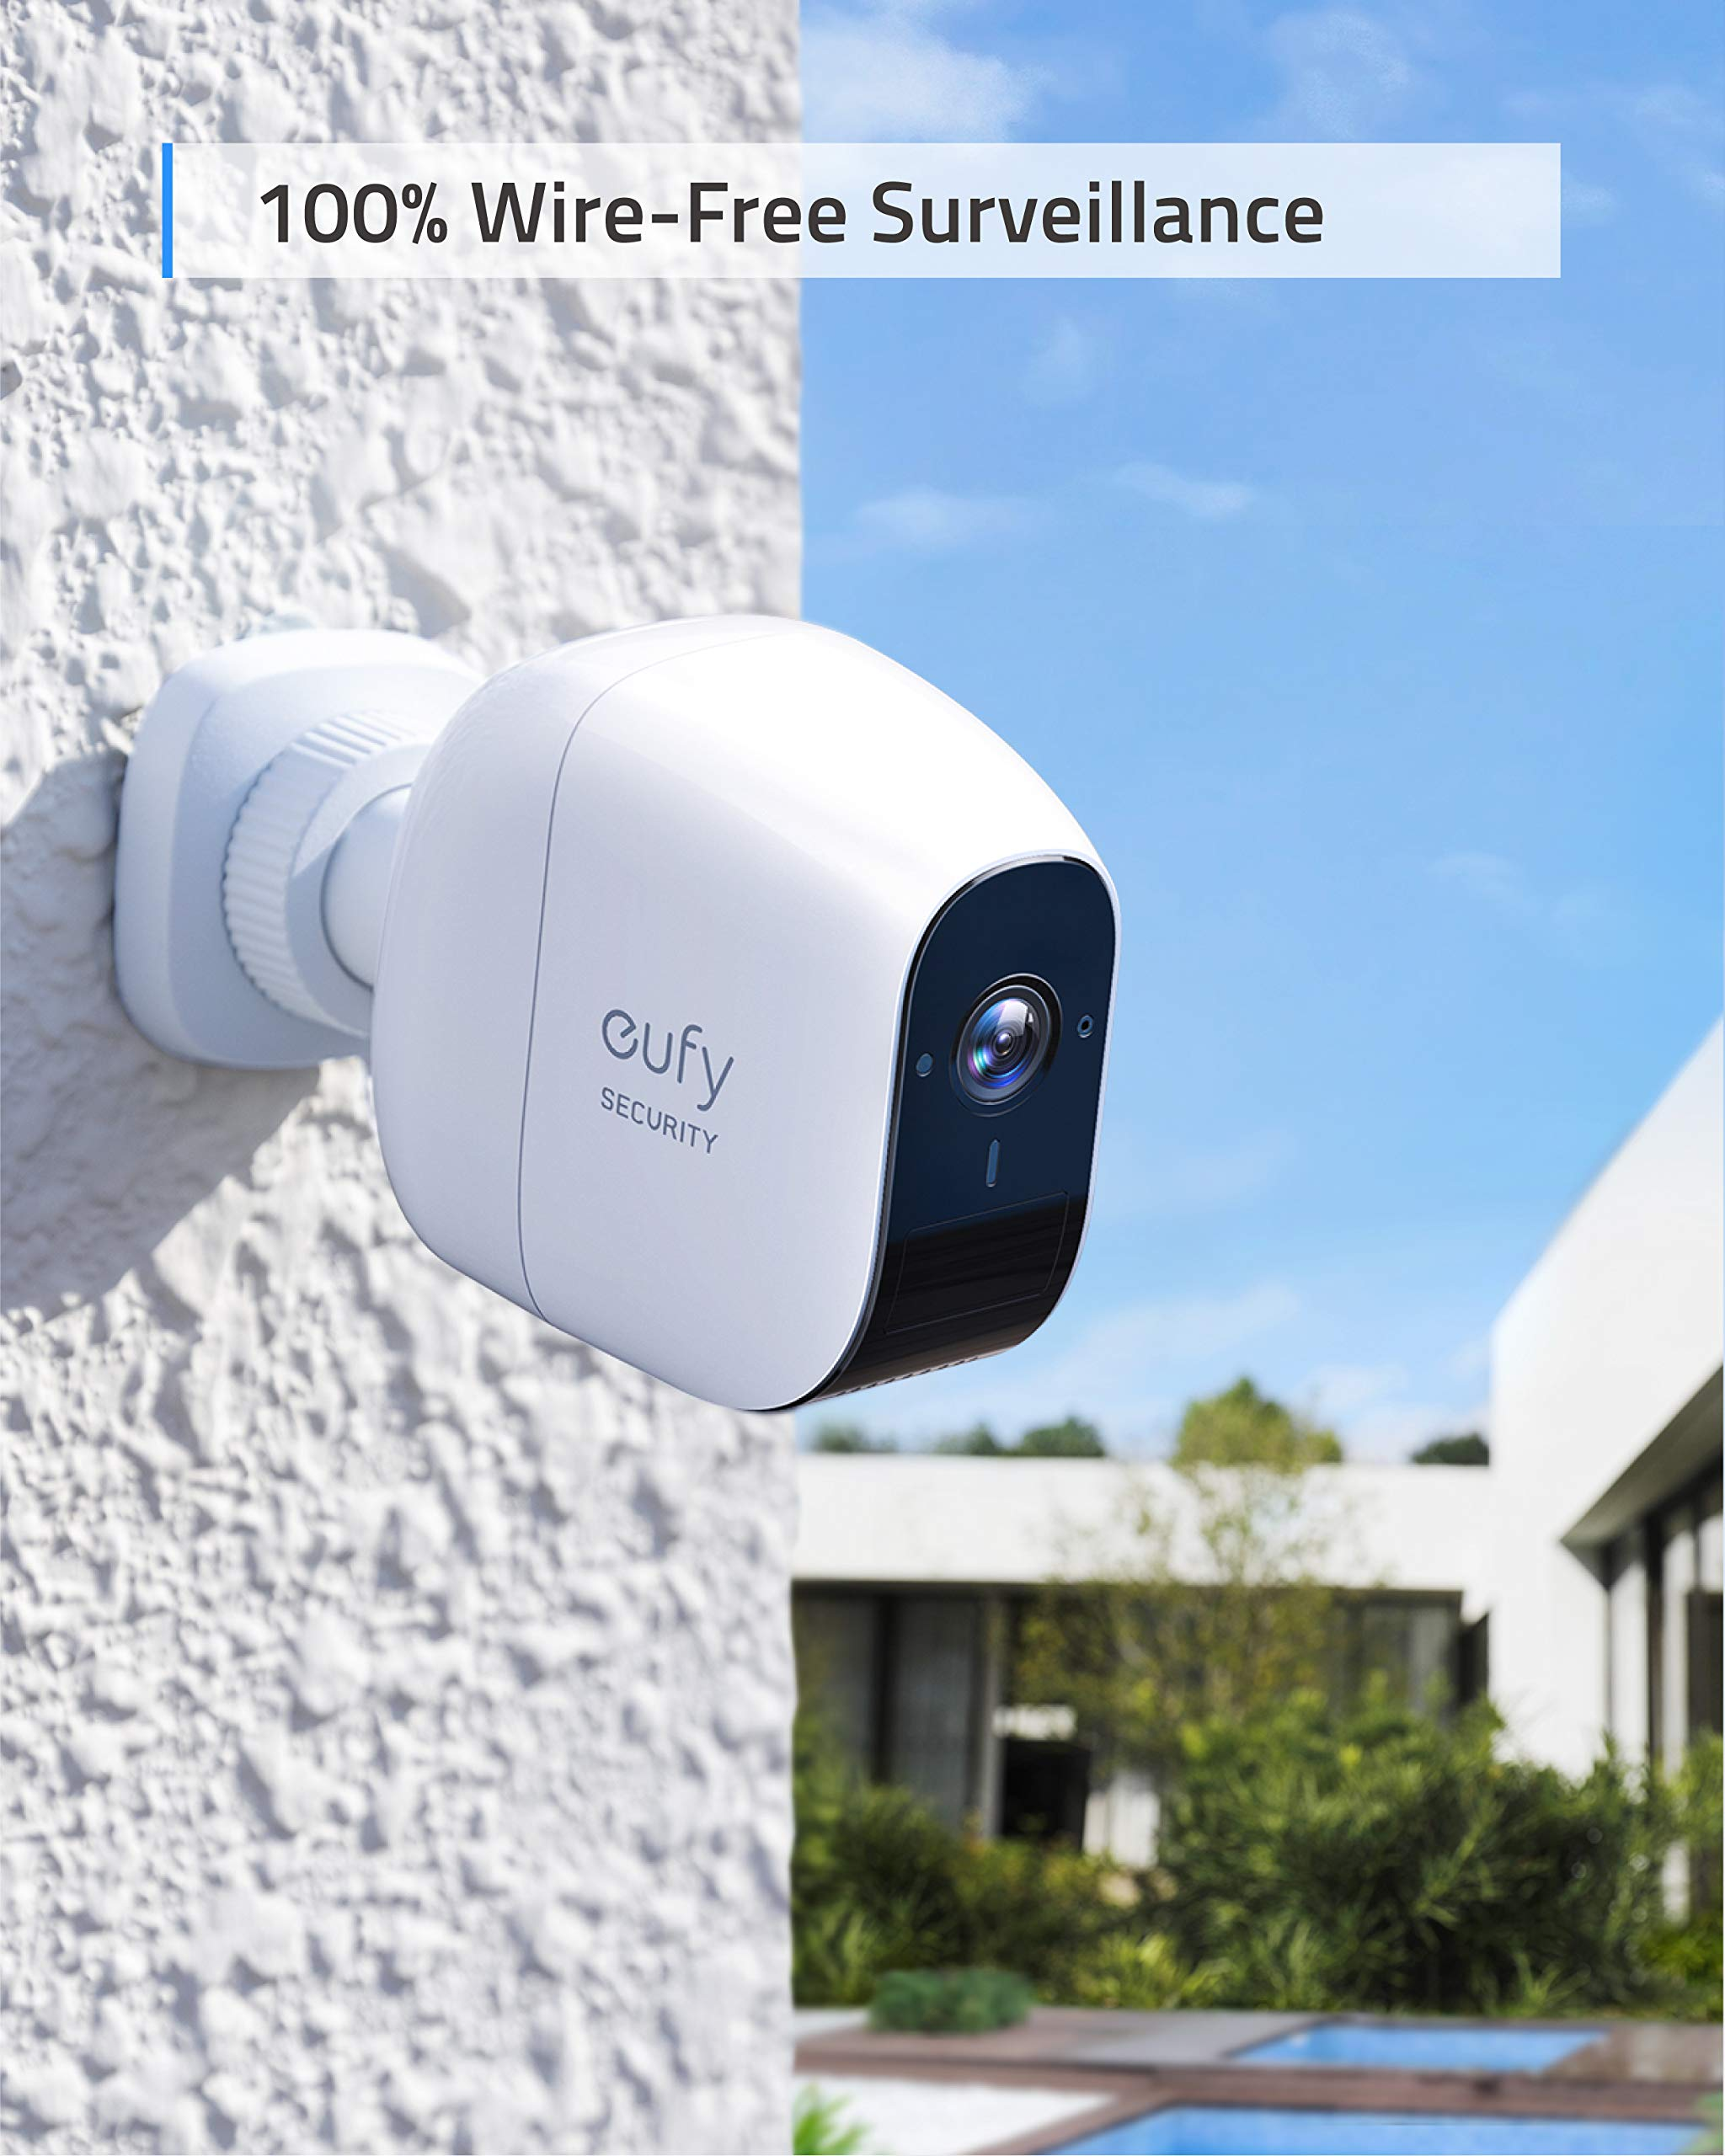 Wireless Home Security Camera System, eufy Security eufyCam E 365-Day Battery Life, 1080p HD, IP65 Weatherproof, Night Vision, Compatible with Amazon Alexa, 2-Cam Kit, No Monthly Fee by Eufy (Image #2)